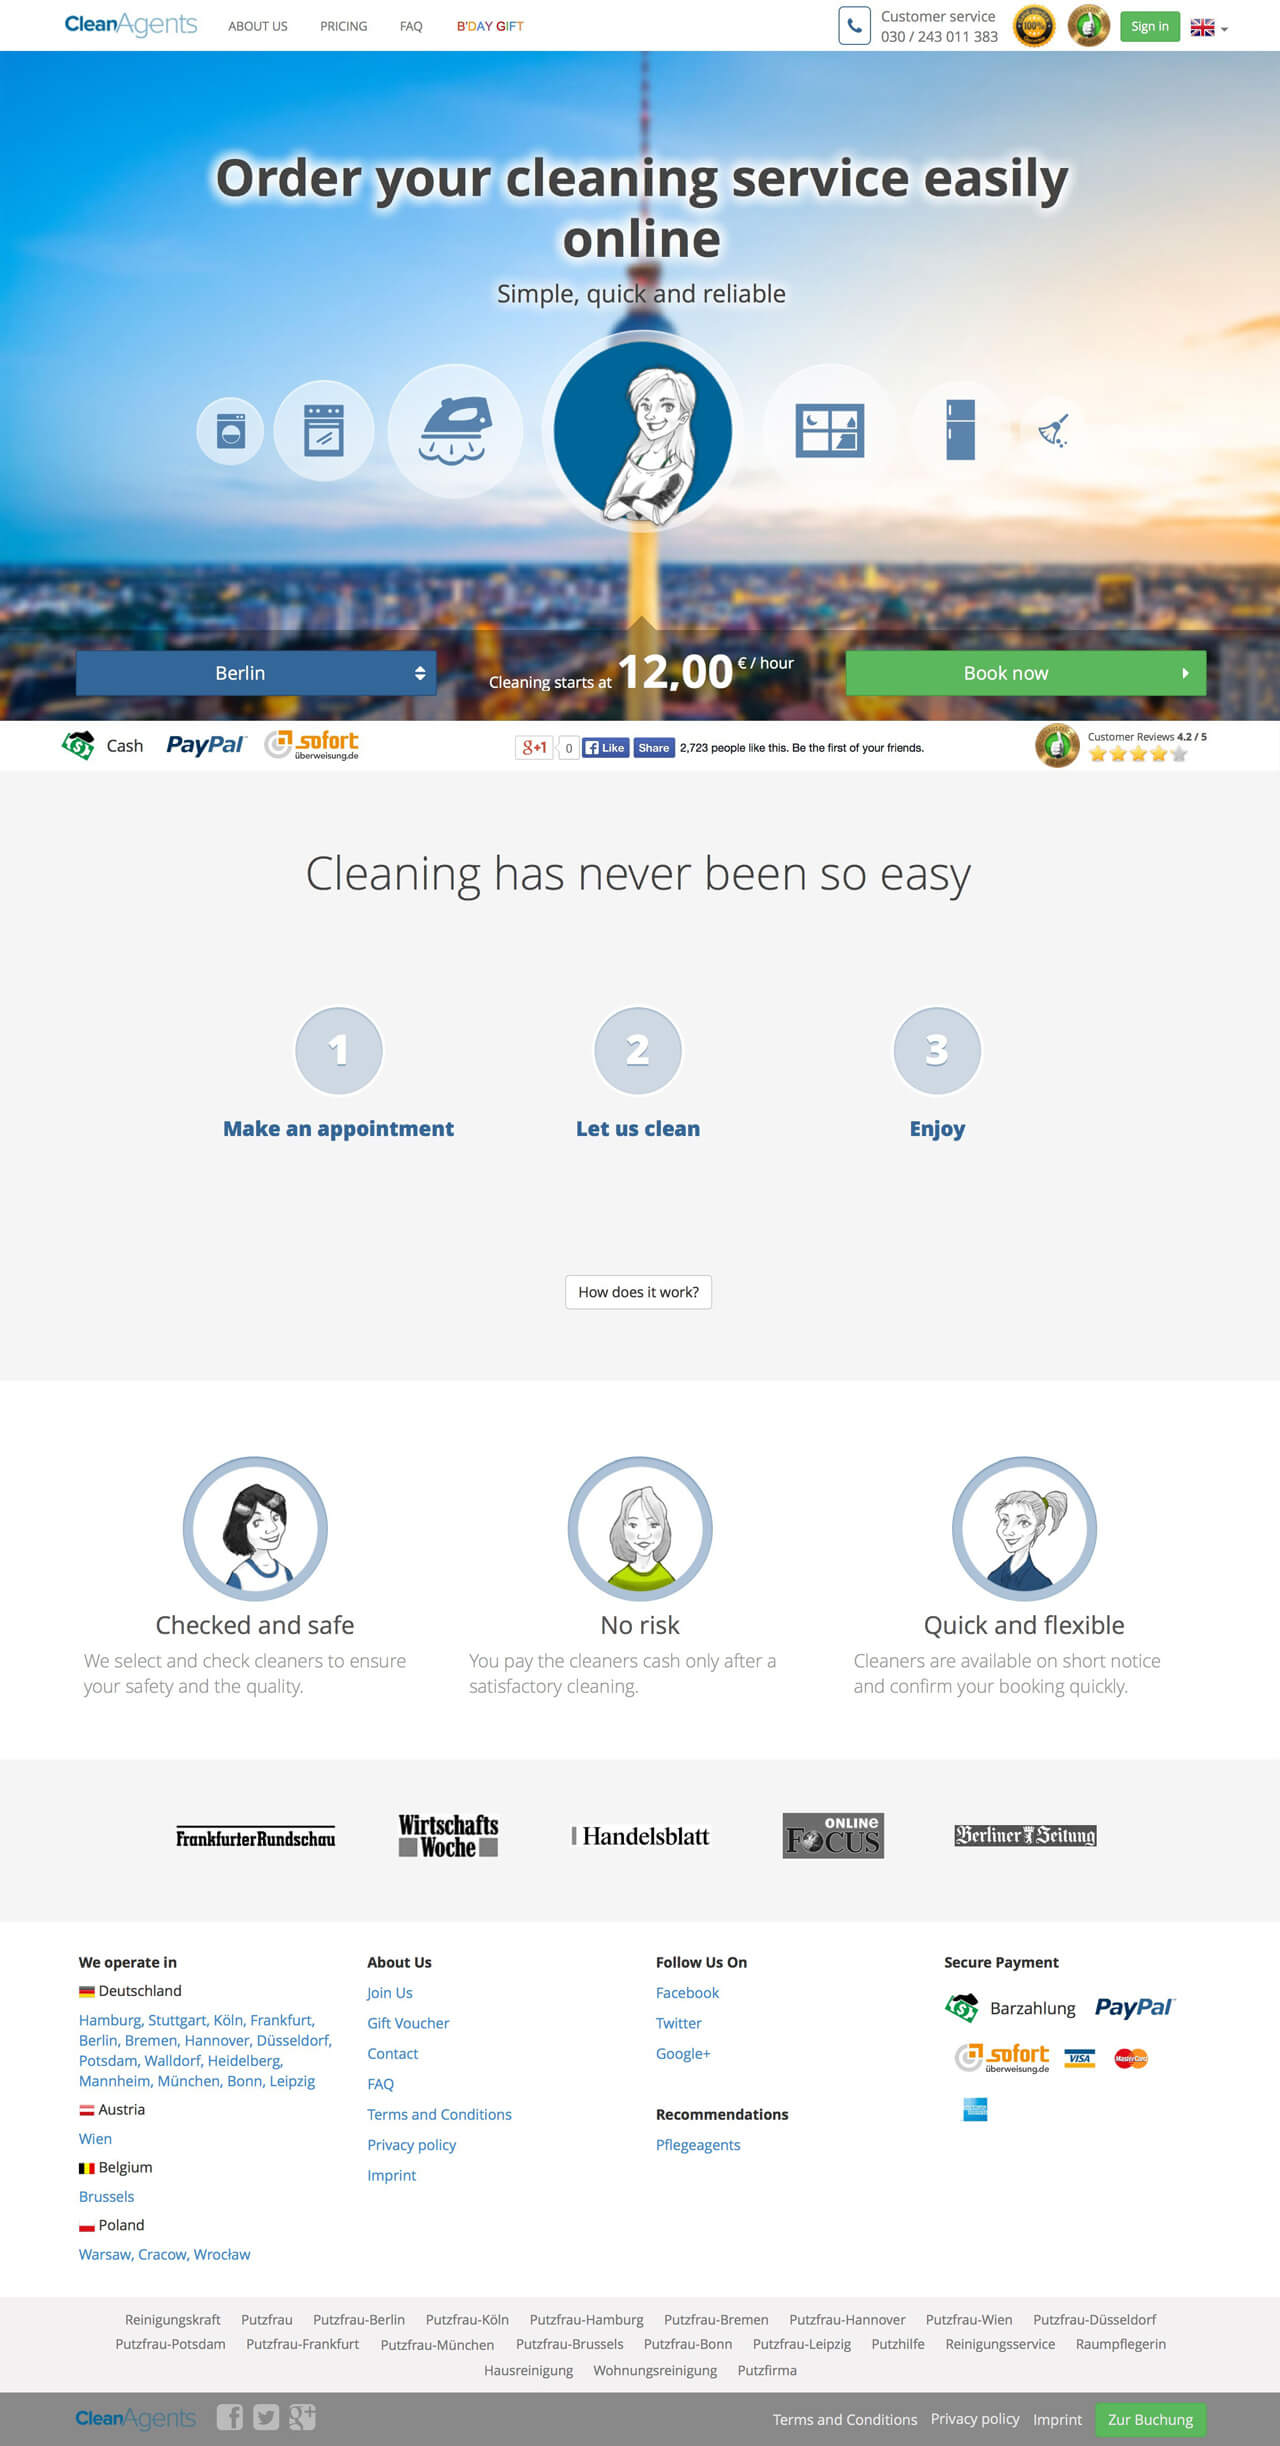 CleanAgents website - main page